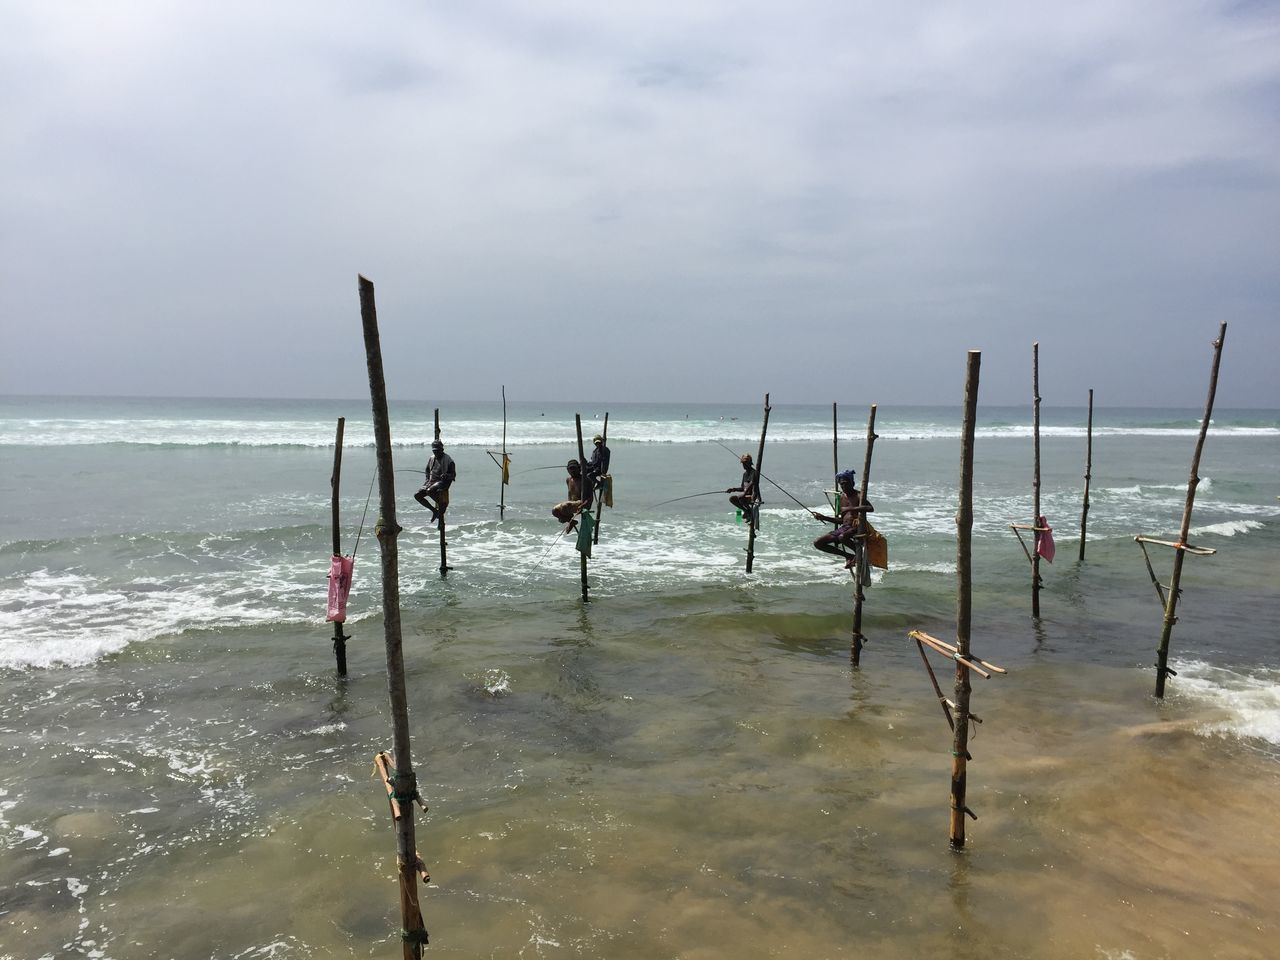 Beach Beauty In Nature Cloud - Sky Day Fishermen Fishersmen On Sticks Horizon Over Water Nature Outdoors Outrigger Sand Scenics Sea Sky Sri Lanka Sri Lanka Travel Sri Lankan Sri Lankan Fishier Travel Destinations Water